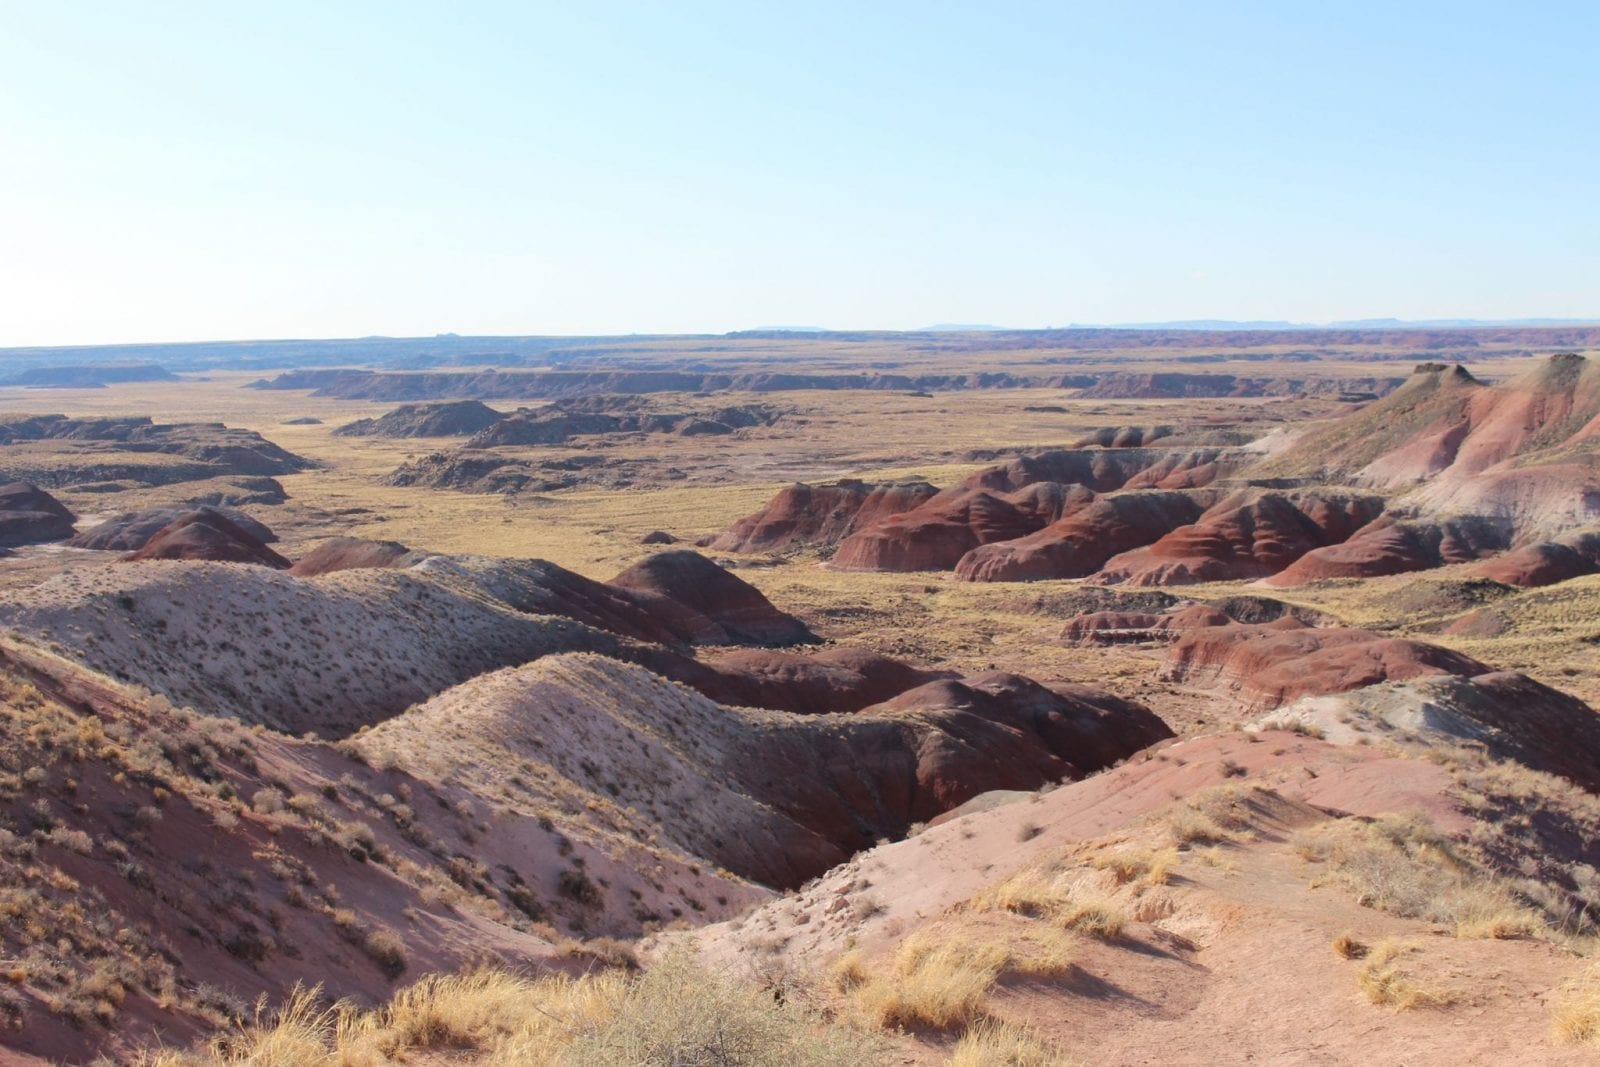 Scenic shot of the mountains at the Petrified National Forest.